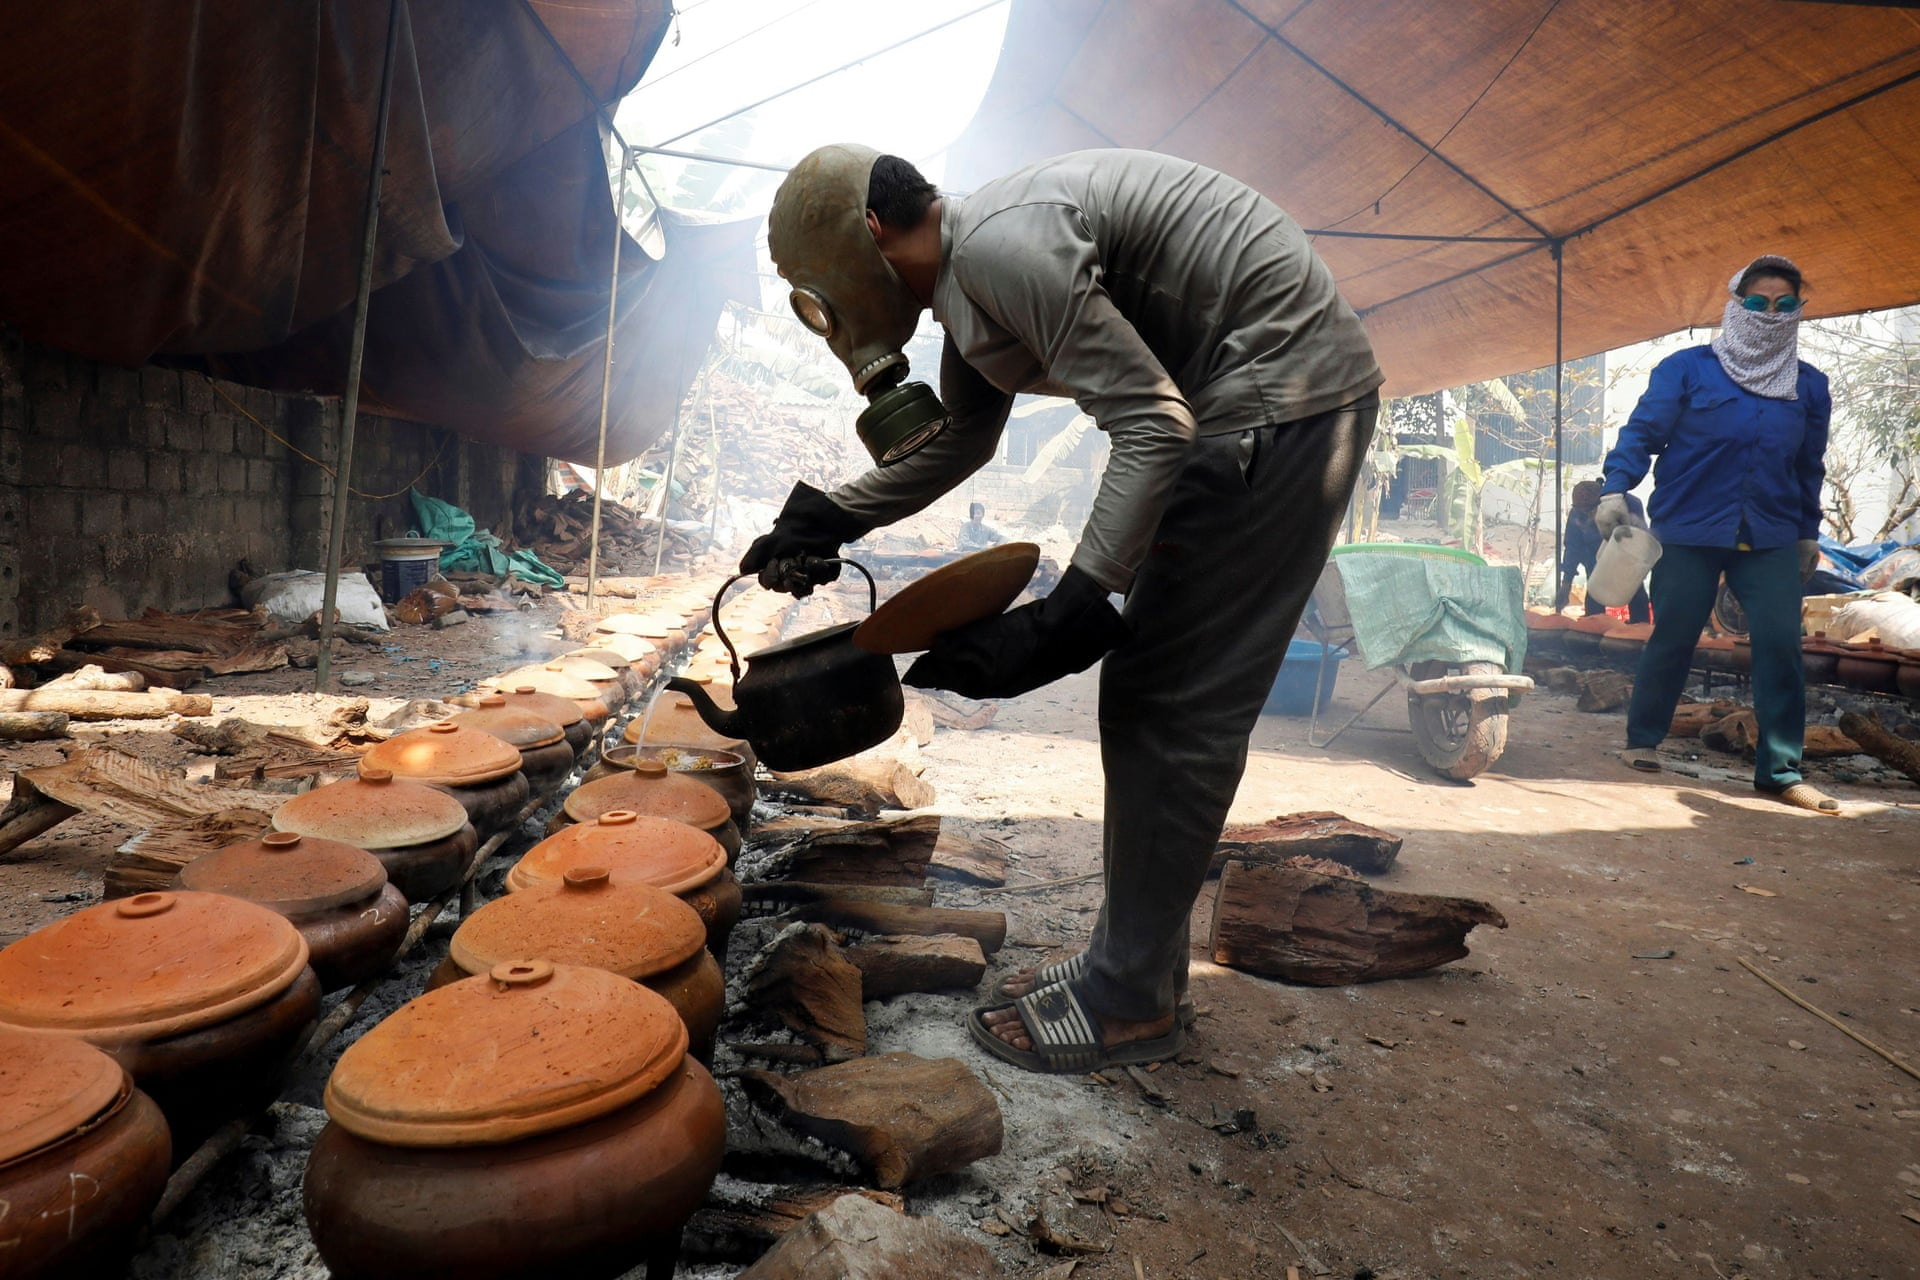 Bui Van Cuong wears a gas mask as he braises black carp in clay pots with firewood to serve as a traditional Vietnamese dish, Ha Nam Province. Photo by Reuters/Kham.